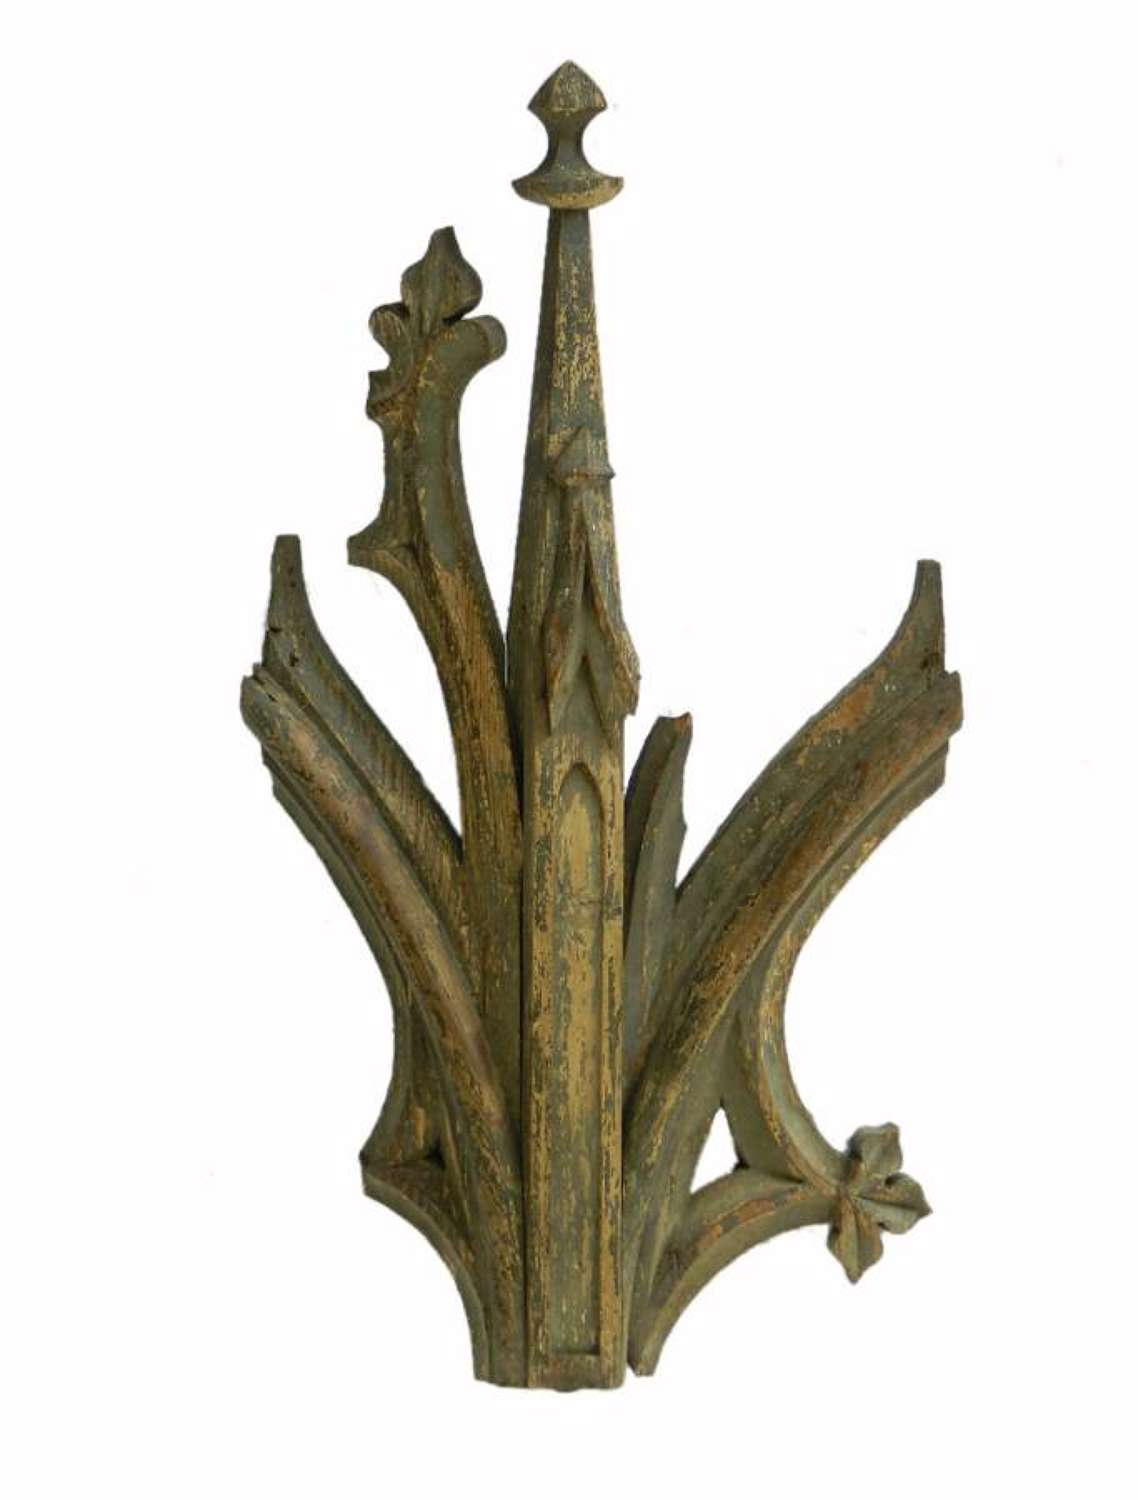 C19 Gothic Wall Light French Chapel Architectural Element Carved Wood